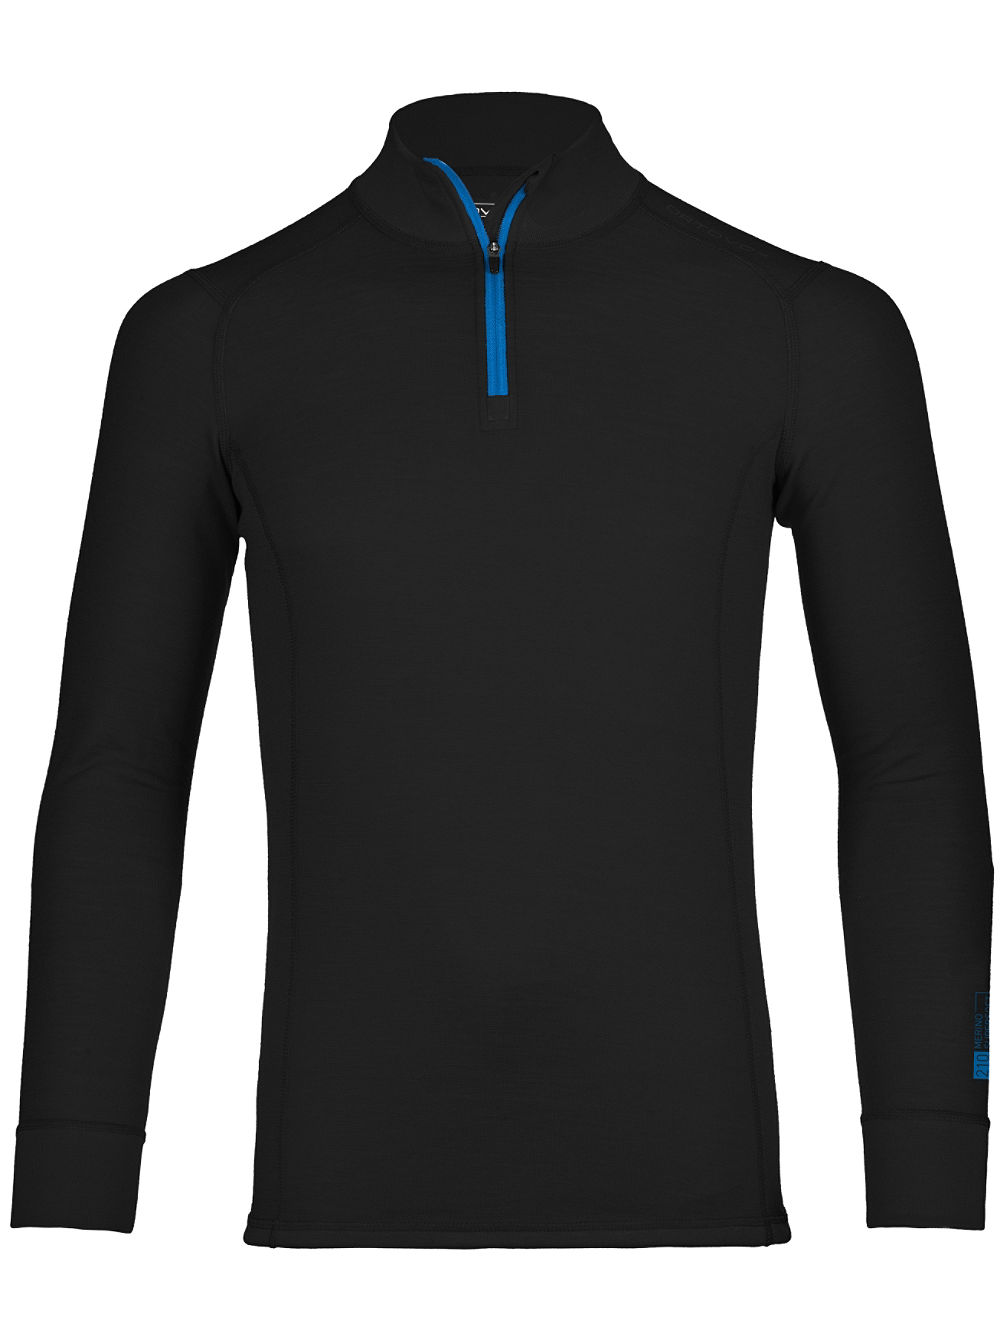 Merino S-Soft 210 Zip Neck Tech Tee LS